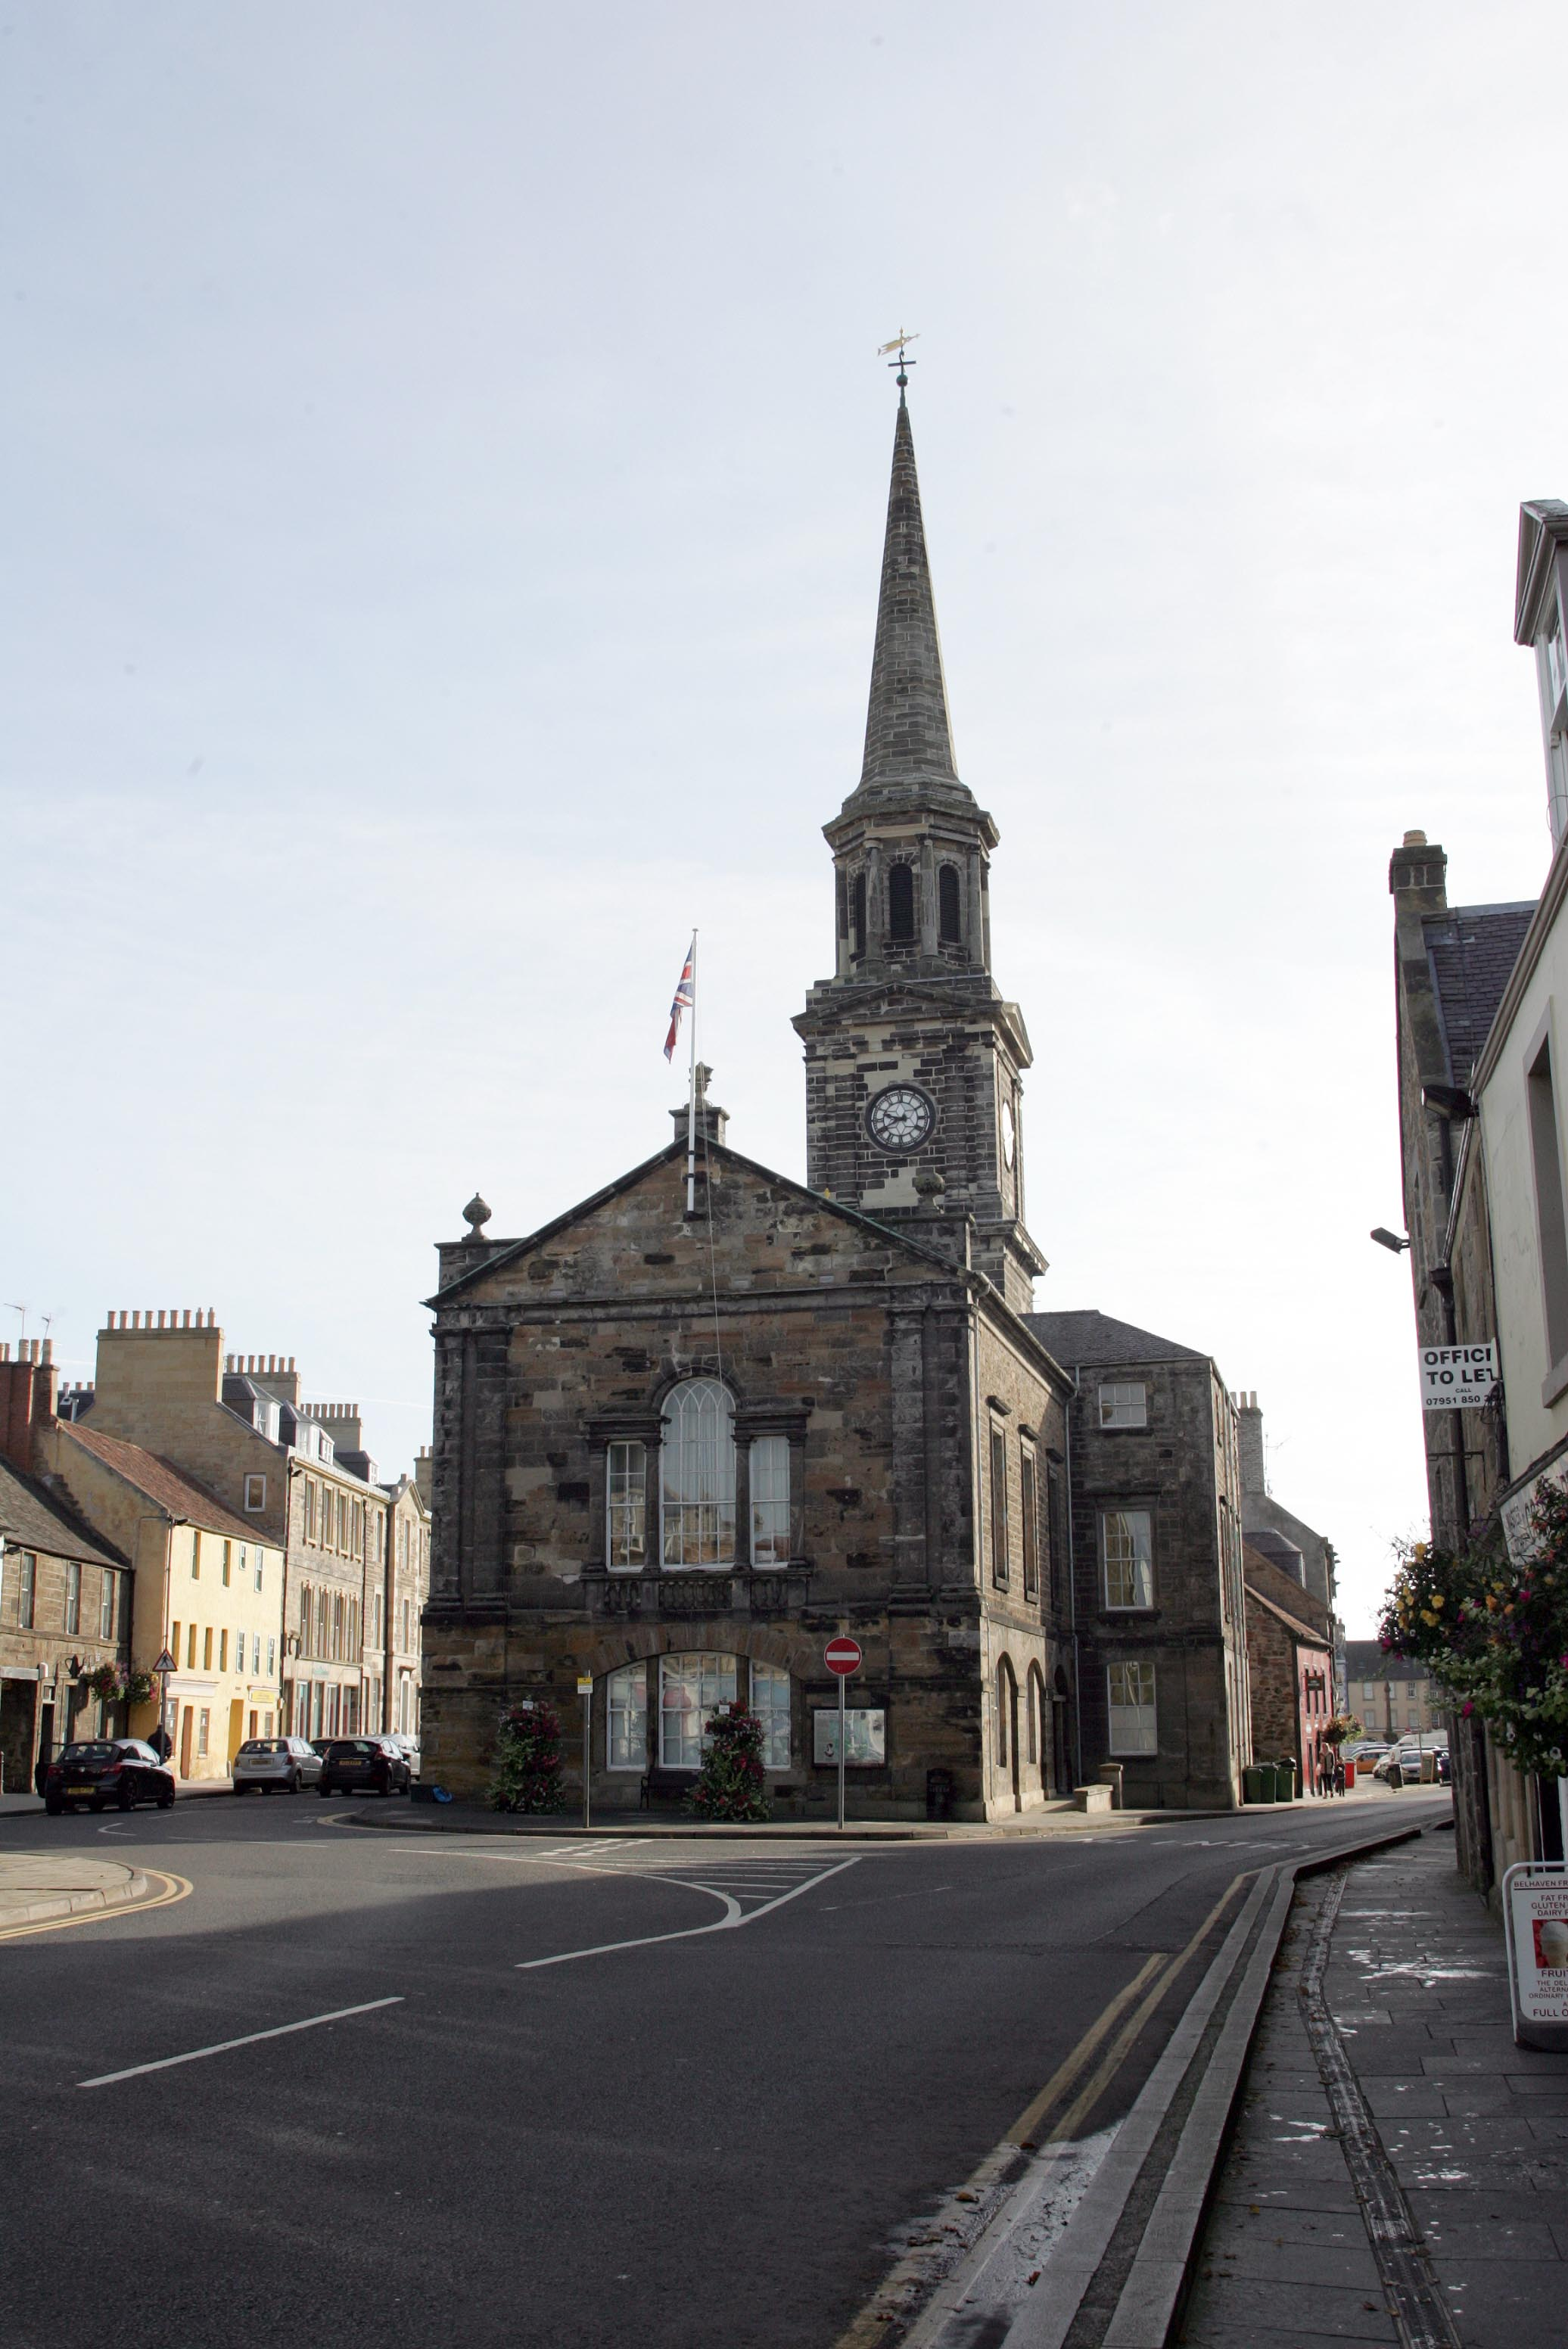 Calls have been made for Haddington's curfew bell at the Town House (pictured) to resume its ringing